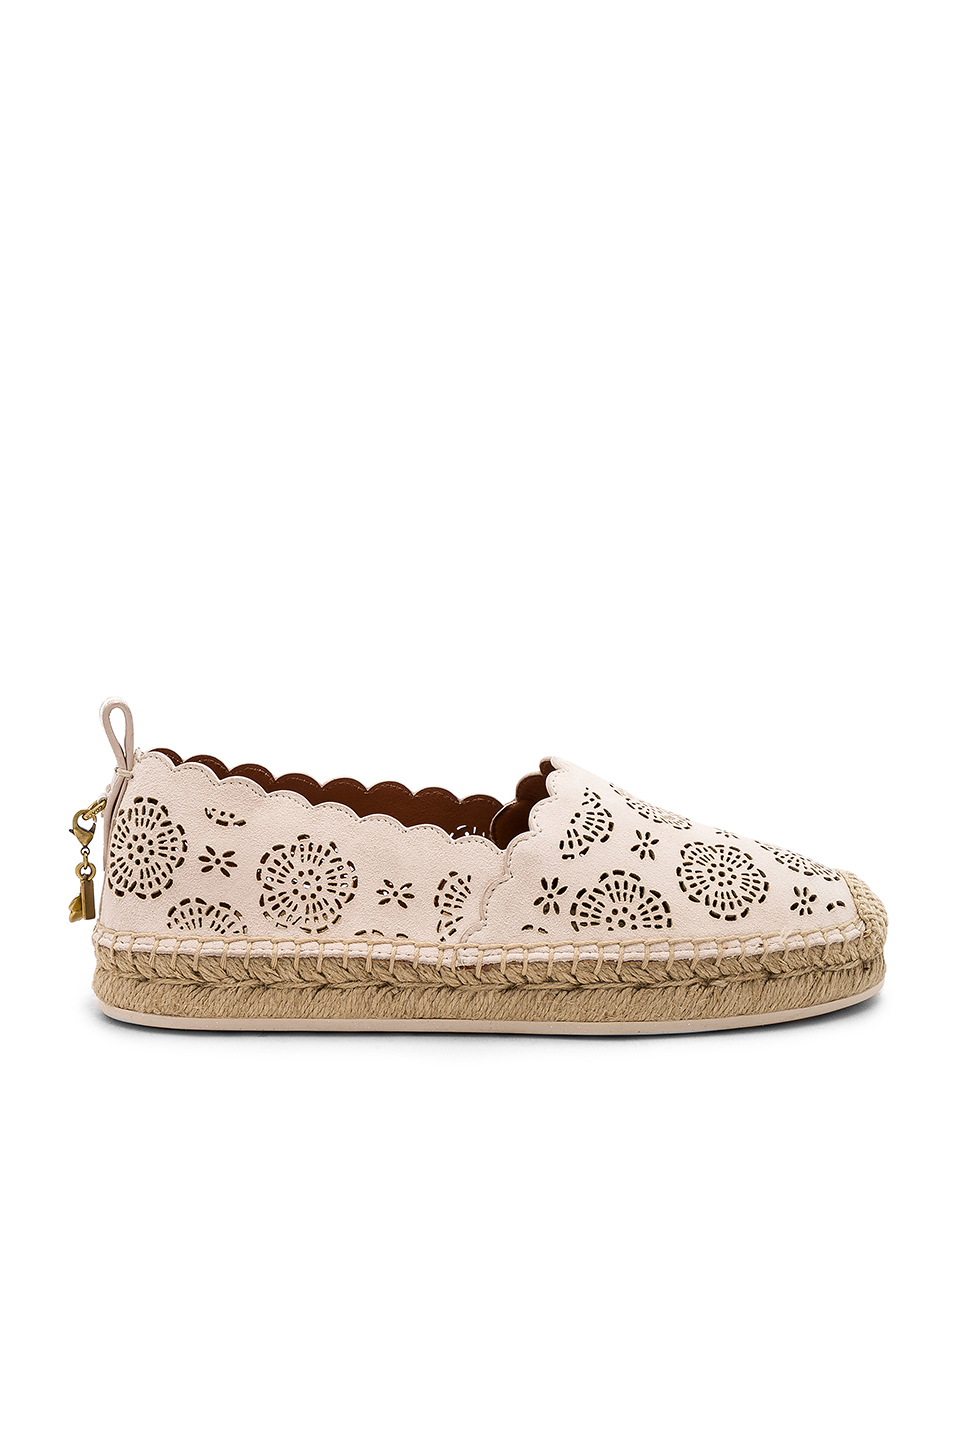 Coach 1941 Tea Rose Astor Espadrille in Chalk